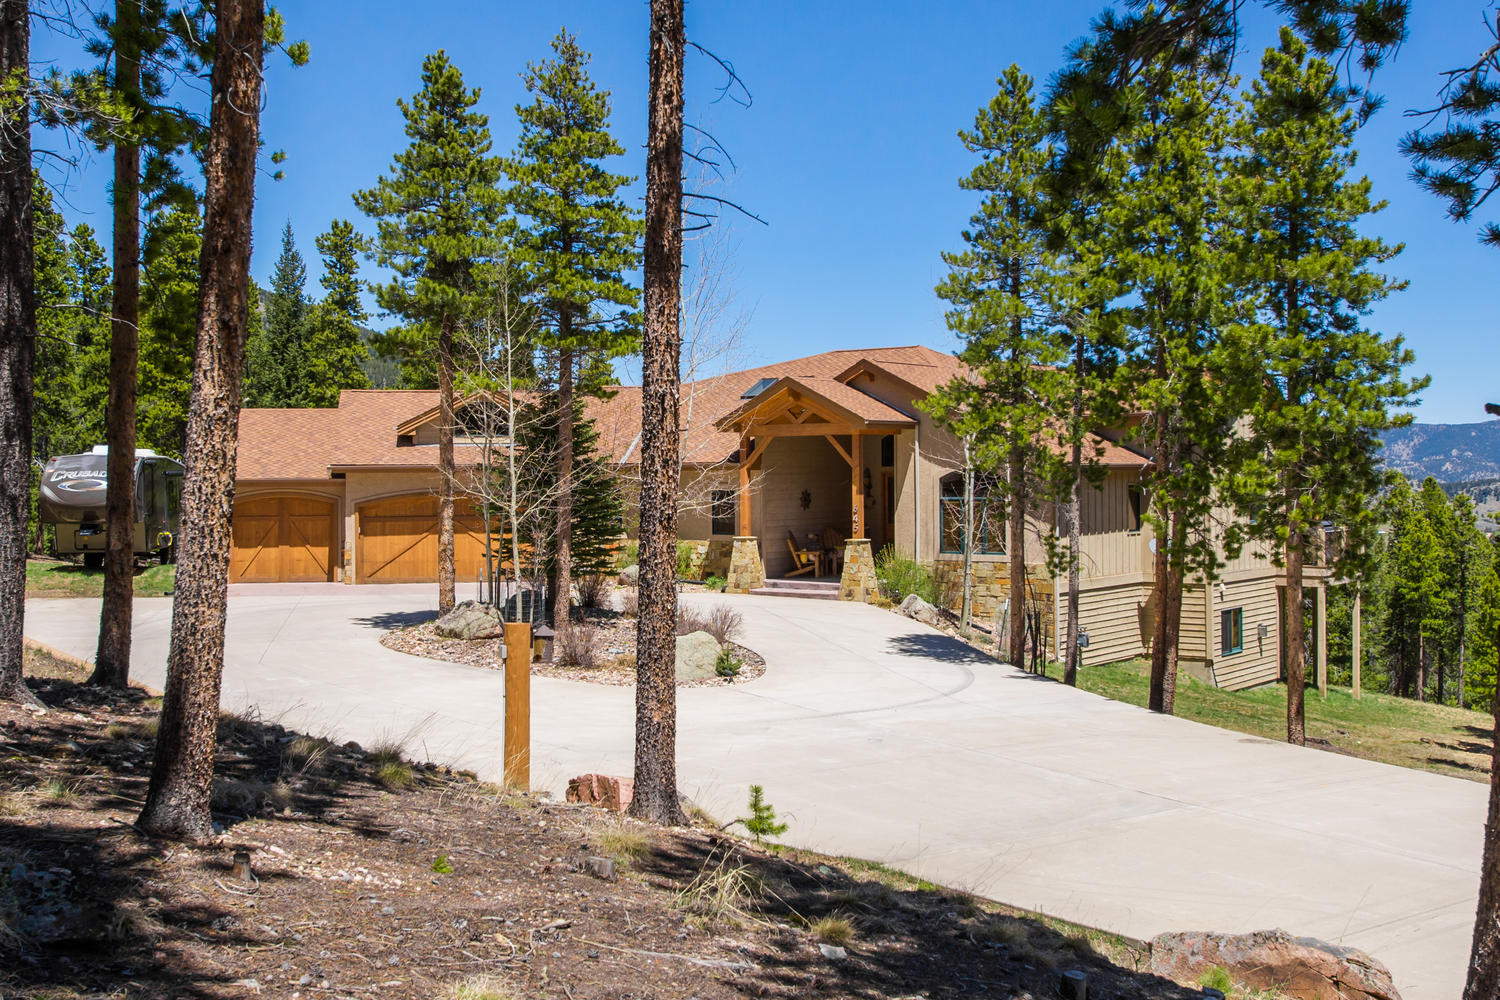 Casa Unifamiliar por un Venta en Breath taking mountain views 645 Old Squaw Pass Road Evergreen, Colorado, 80439 Estados Unidos